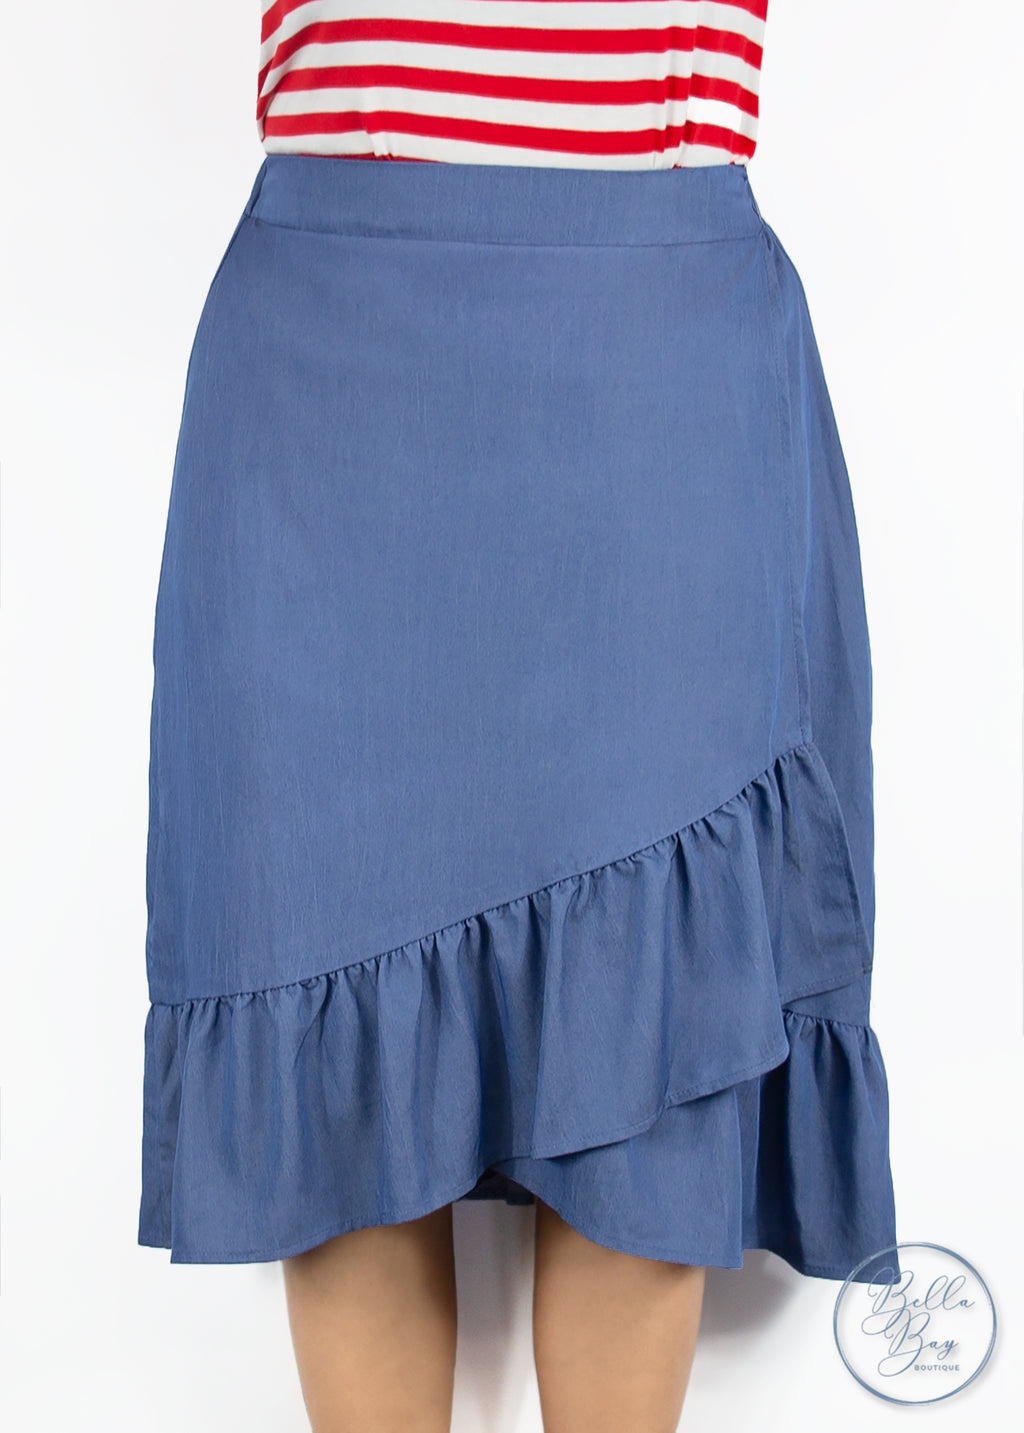 Paisley Raye Kerria Skirt- Denim (XL) - Paisley Raye with Bella Bay Boutique, shop now at  https://shopbellabay.com/ or locally in Newport Oregon